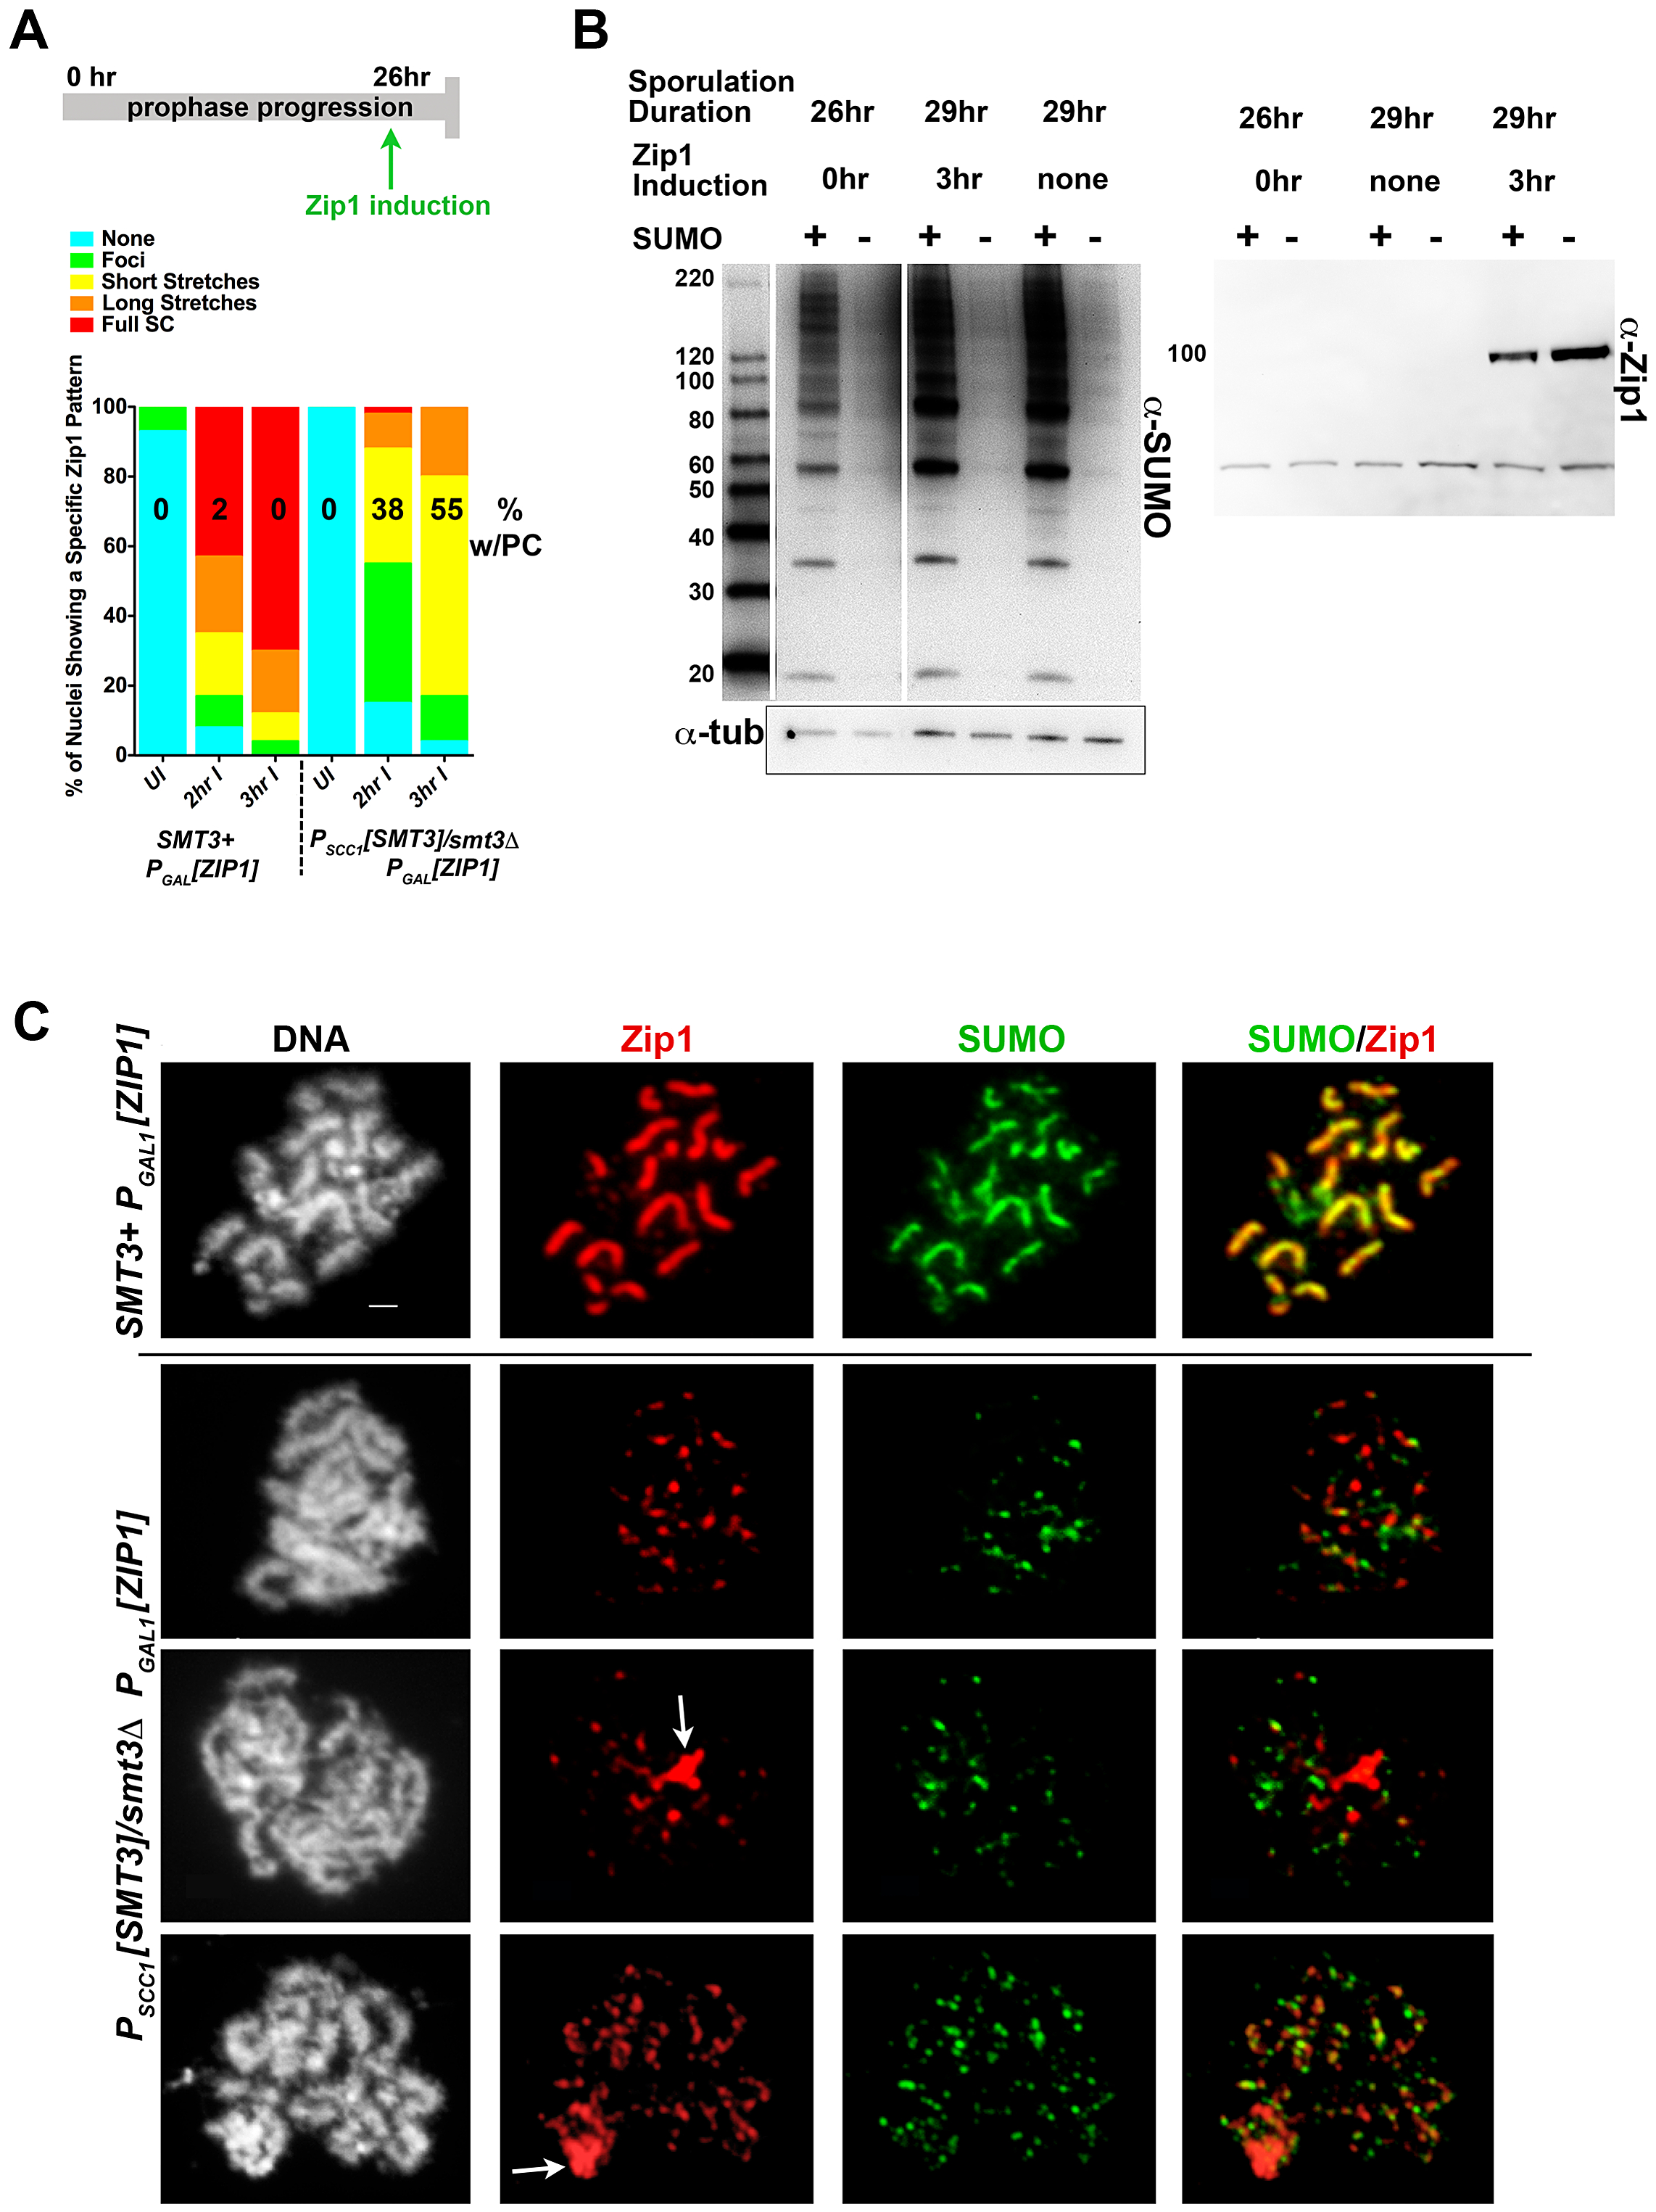 Induced Zip1 assembles full SC stretches in a SUMO-dependent manner.